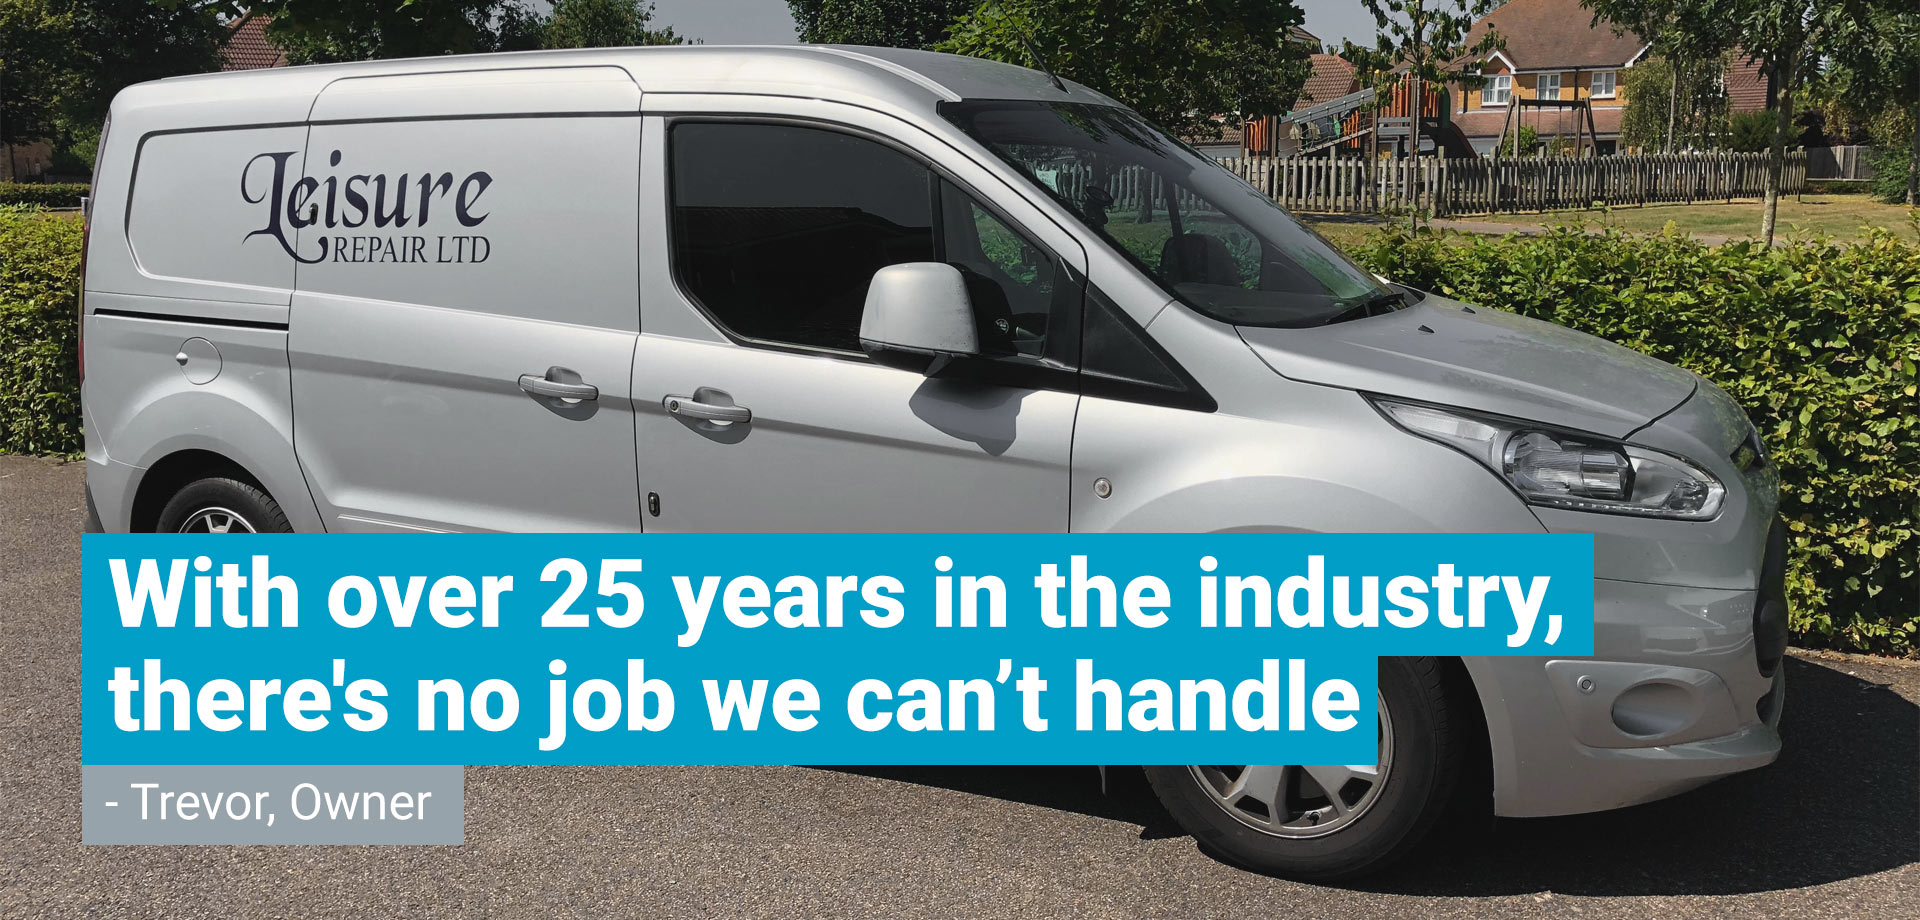 """A photo of one of the Leisure Repair silver vans with a quote from trevor laid over the top saying """"With over 25 years in the industry, there's no job we can't handle"""""""